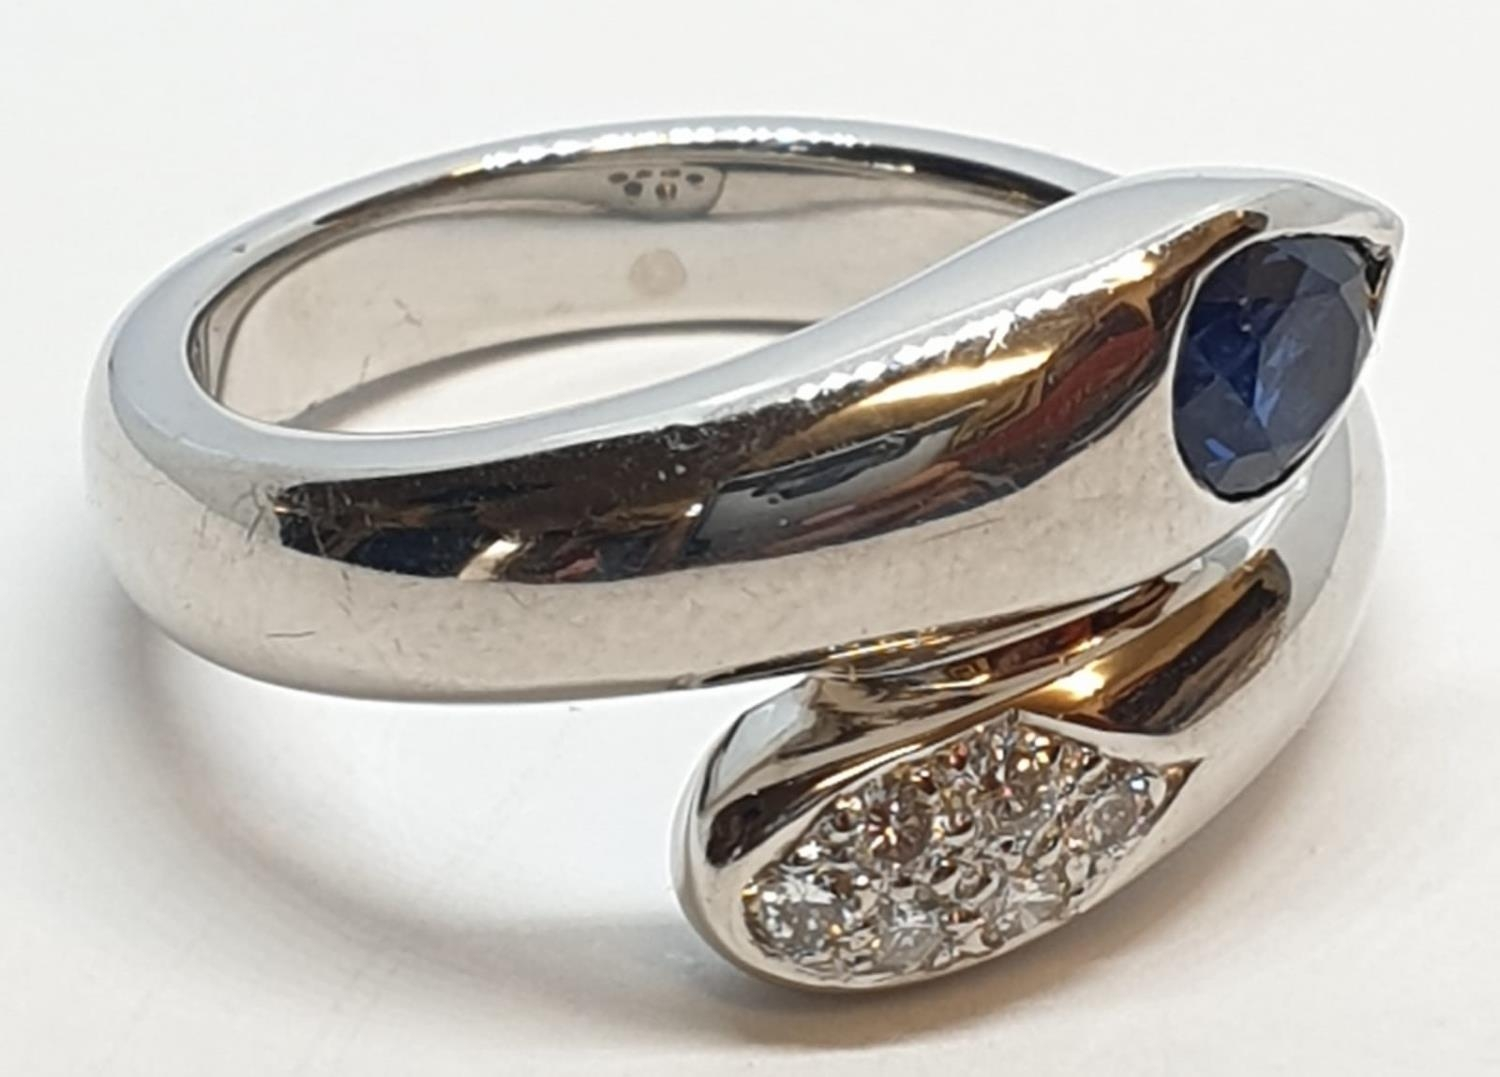 Platinum cross over ring with 0.60ct Thai sapphire and 0.30ct encrusted diamonds, weight 13.7g and - Image 6 of 10